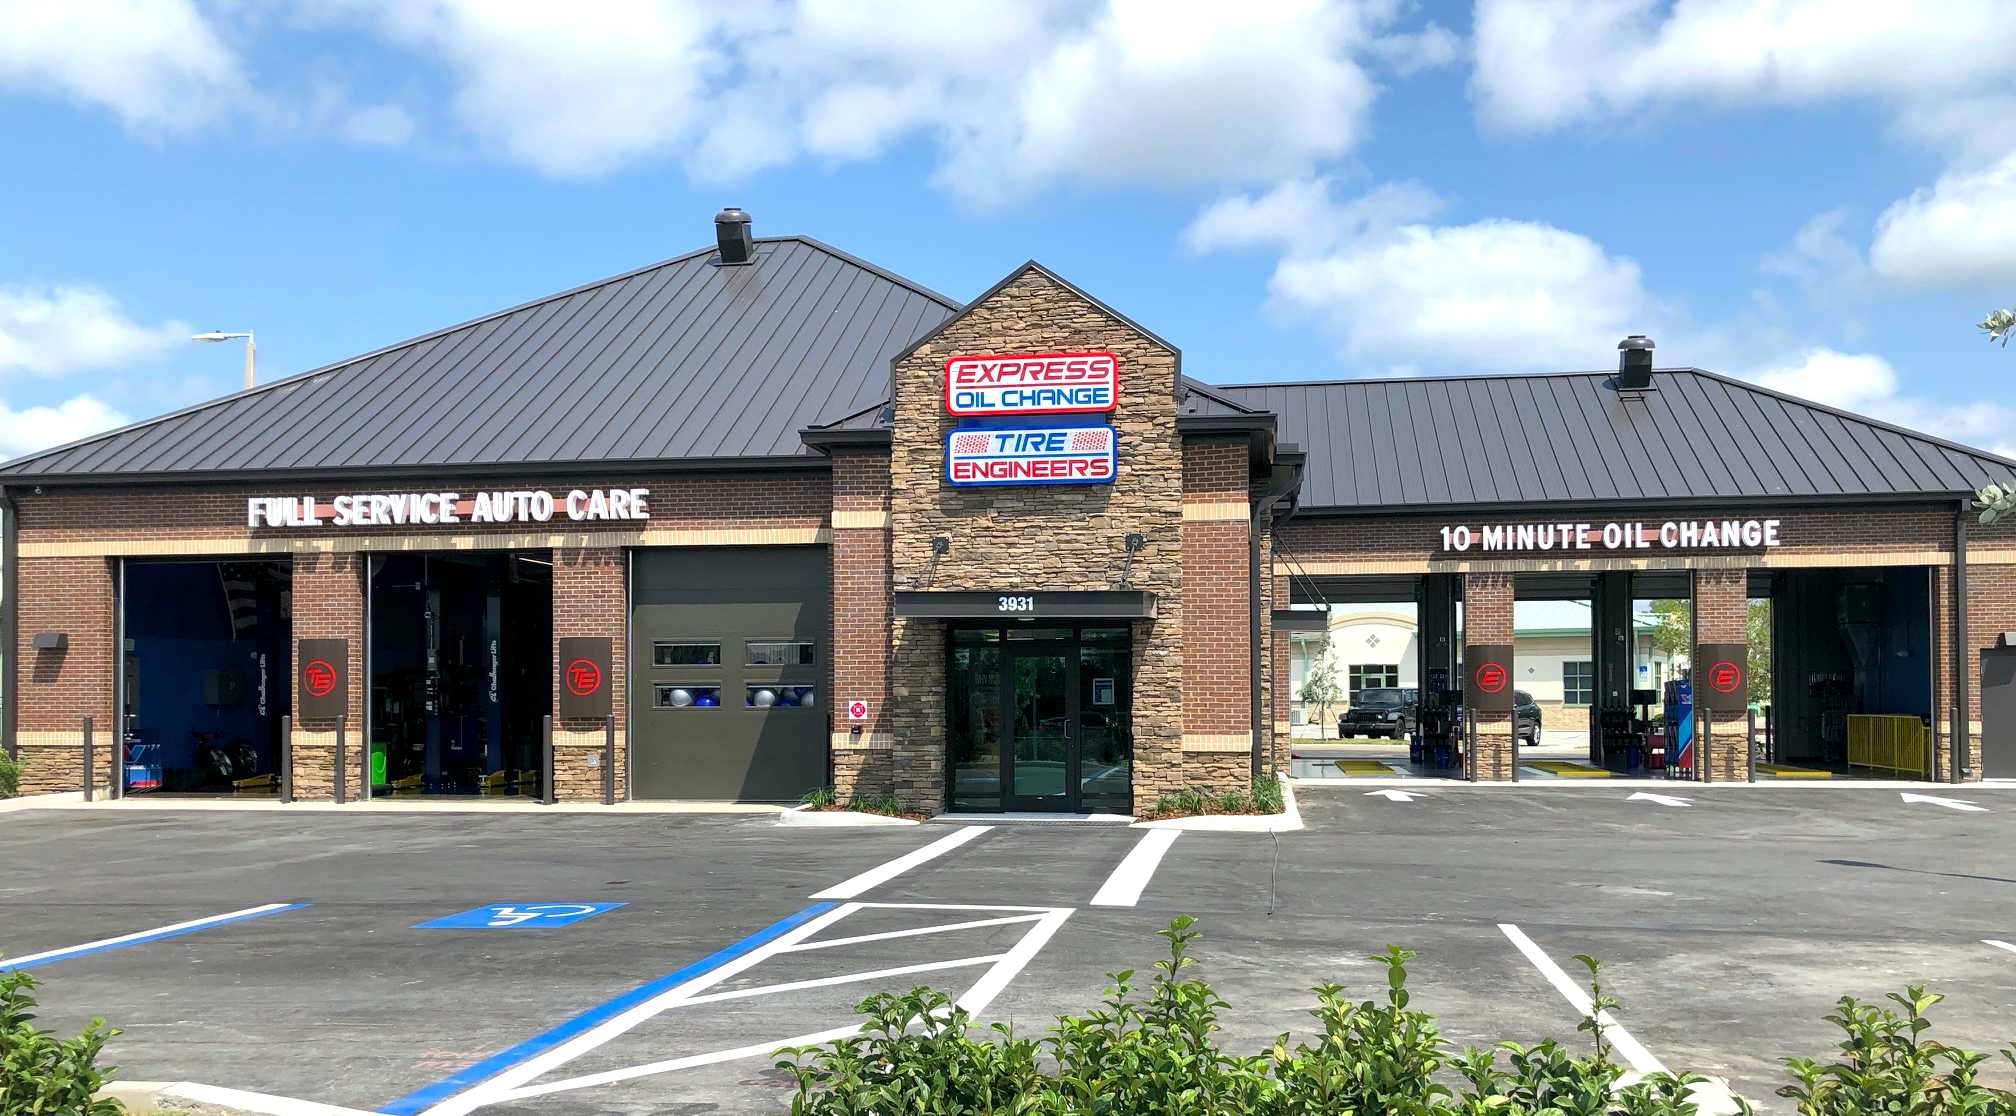 Express Oil Change & Tire Engineers at Oldsmar, FL - Mobbly Bay store